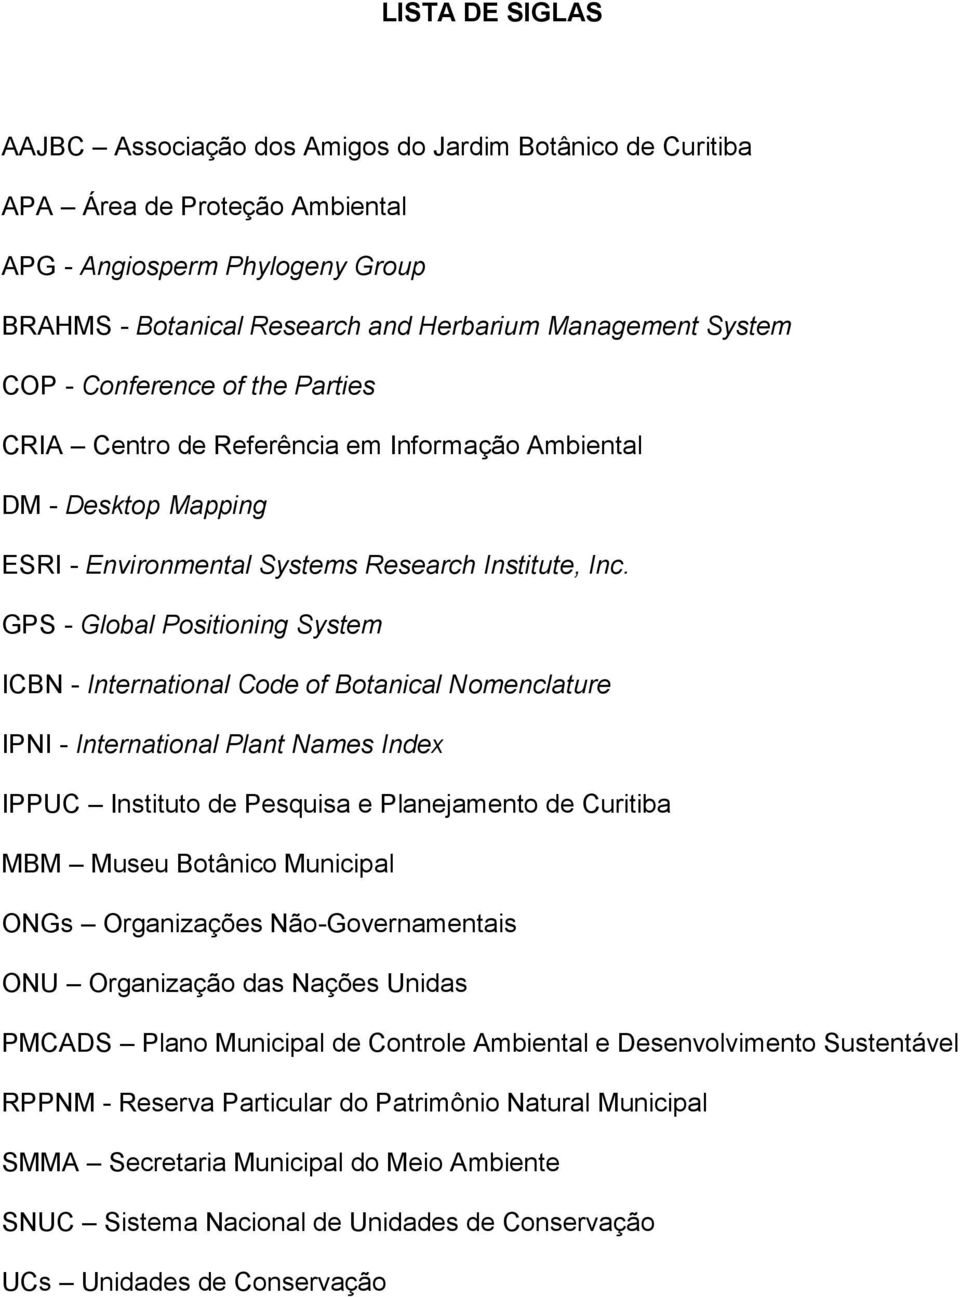 GPS - Global Positioning System ICBN - International Code of Botanical Nomenclature IPNI - International Plant Names Index IPPUC Instituto de Pesquisa e Planejamento de Curitiba MBM Museu Botânico